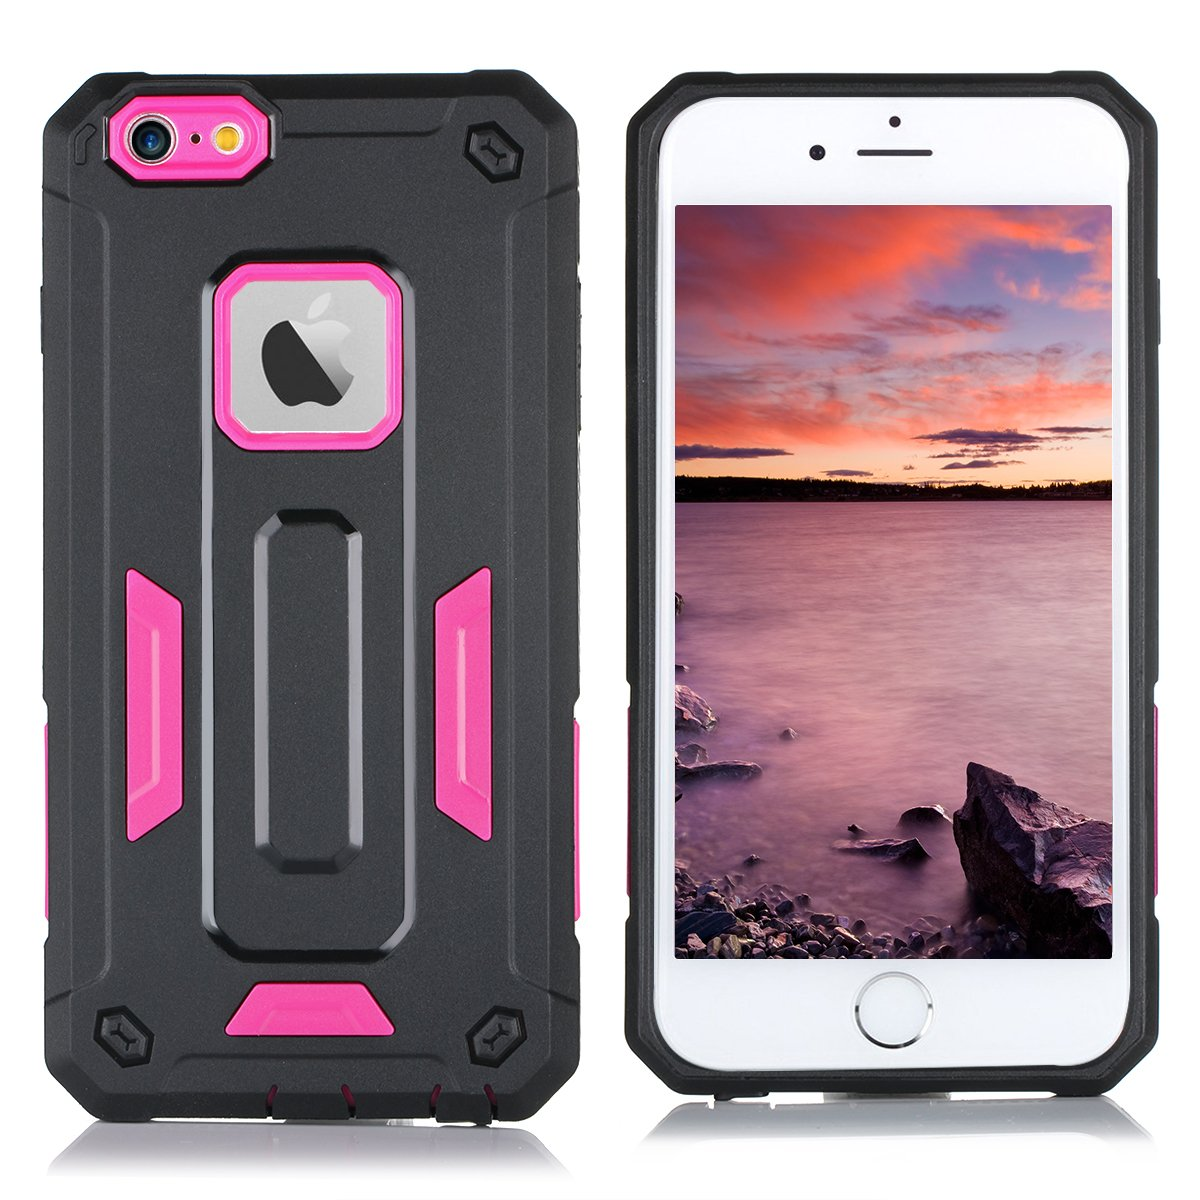 Iphone 6s Case 6 Bentoben 2 In 1 Dual 2in1 Gravity Full Cover Tempered Glass For Plus Layer Hybrid Hard Pc Soft Tpu Bumper Cool Shockproof Anti Scratch Body Protective